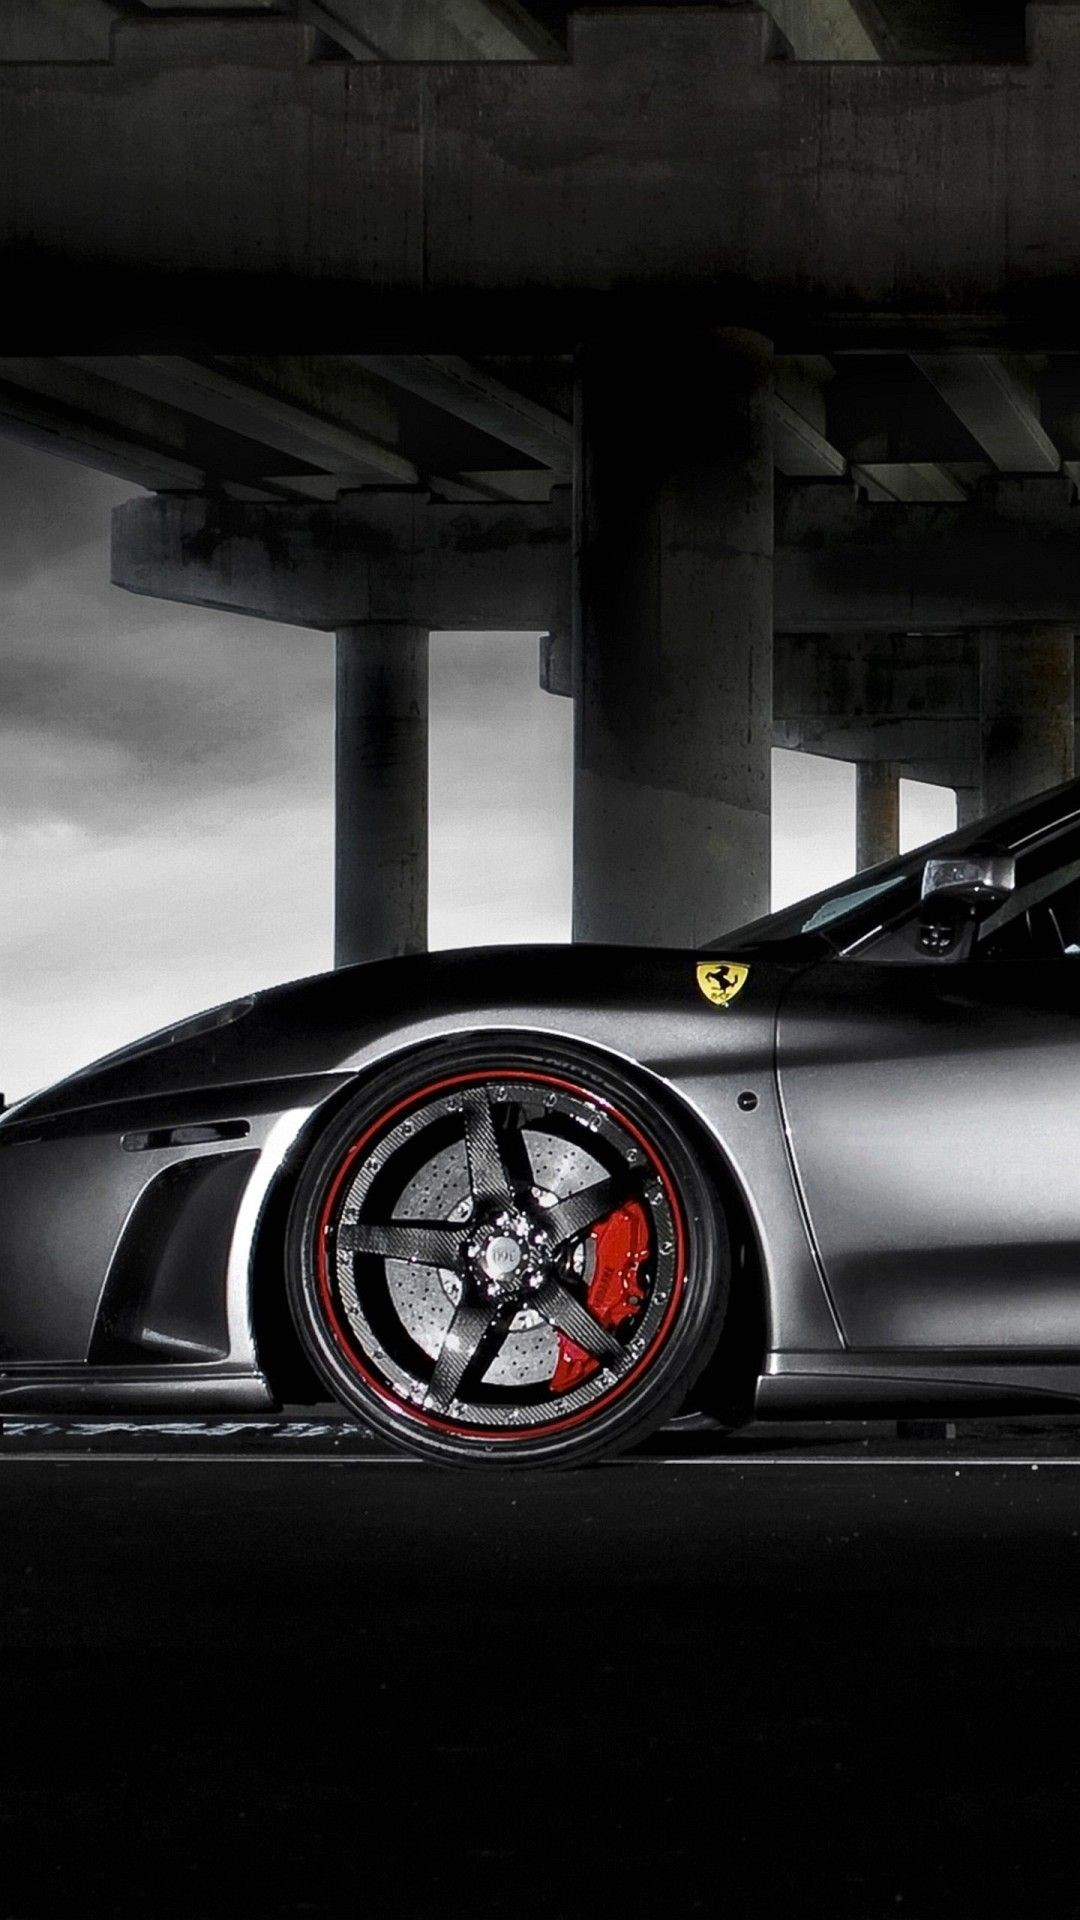 Ferrari Iphone Wallpapers Posted By Ryan Peltier